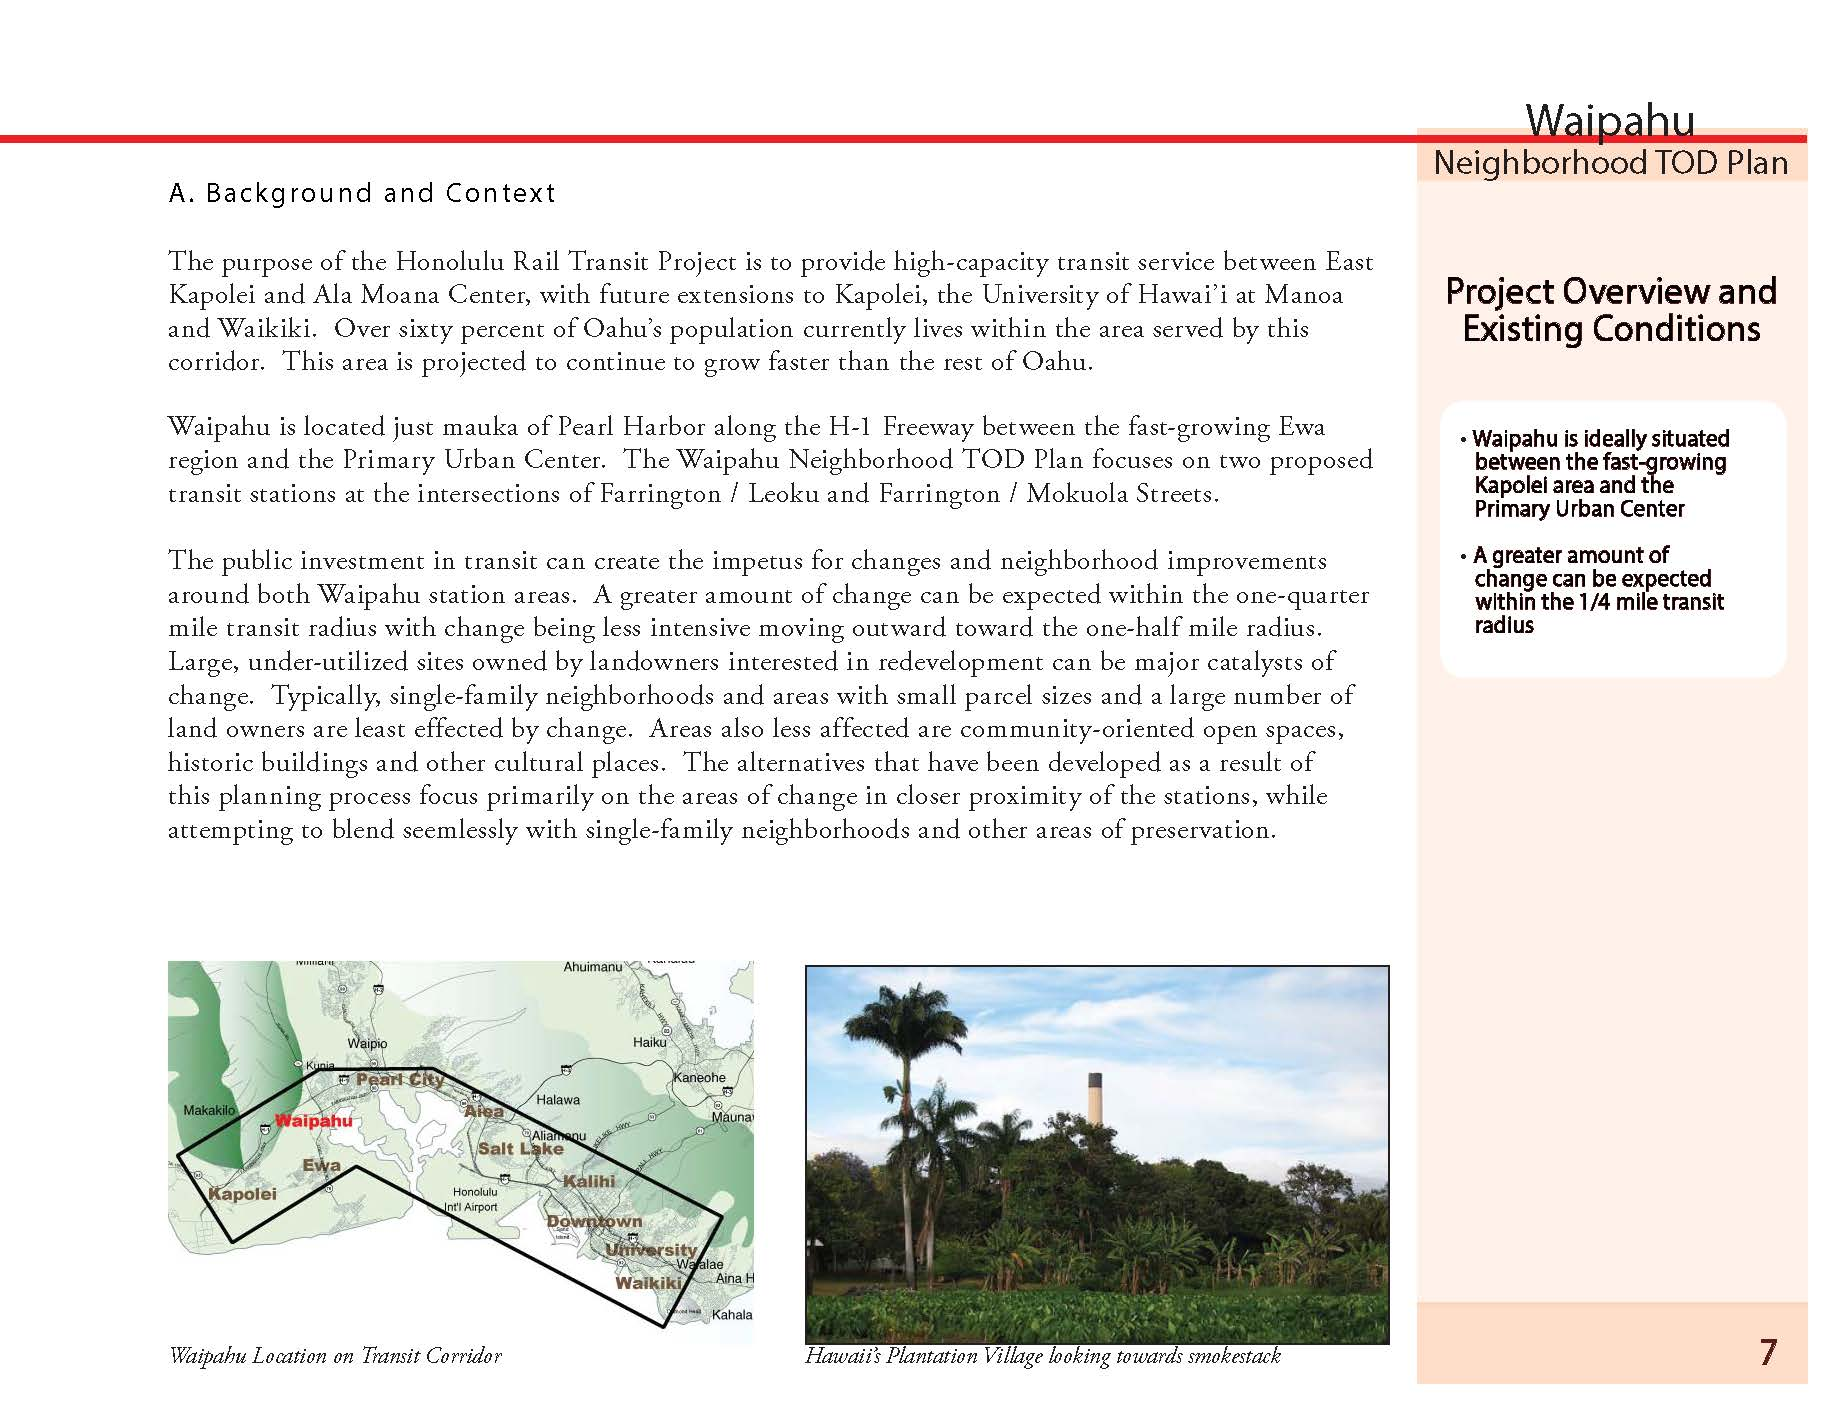 160513_Waipahu Neighborhood TOD Plan_Page_013.jpg